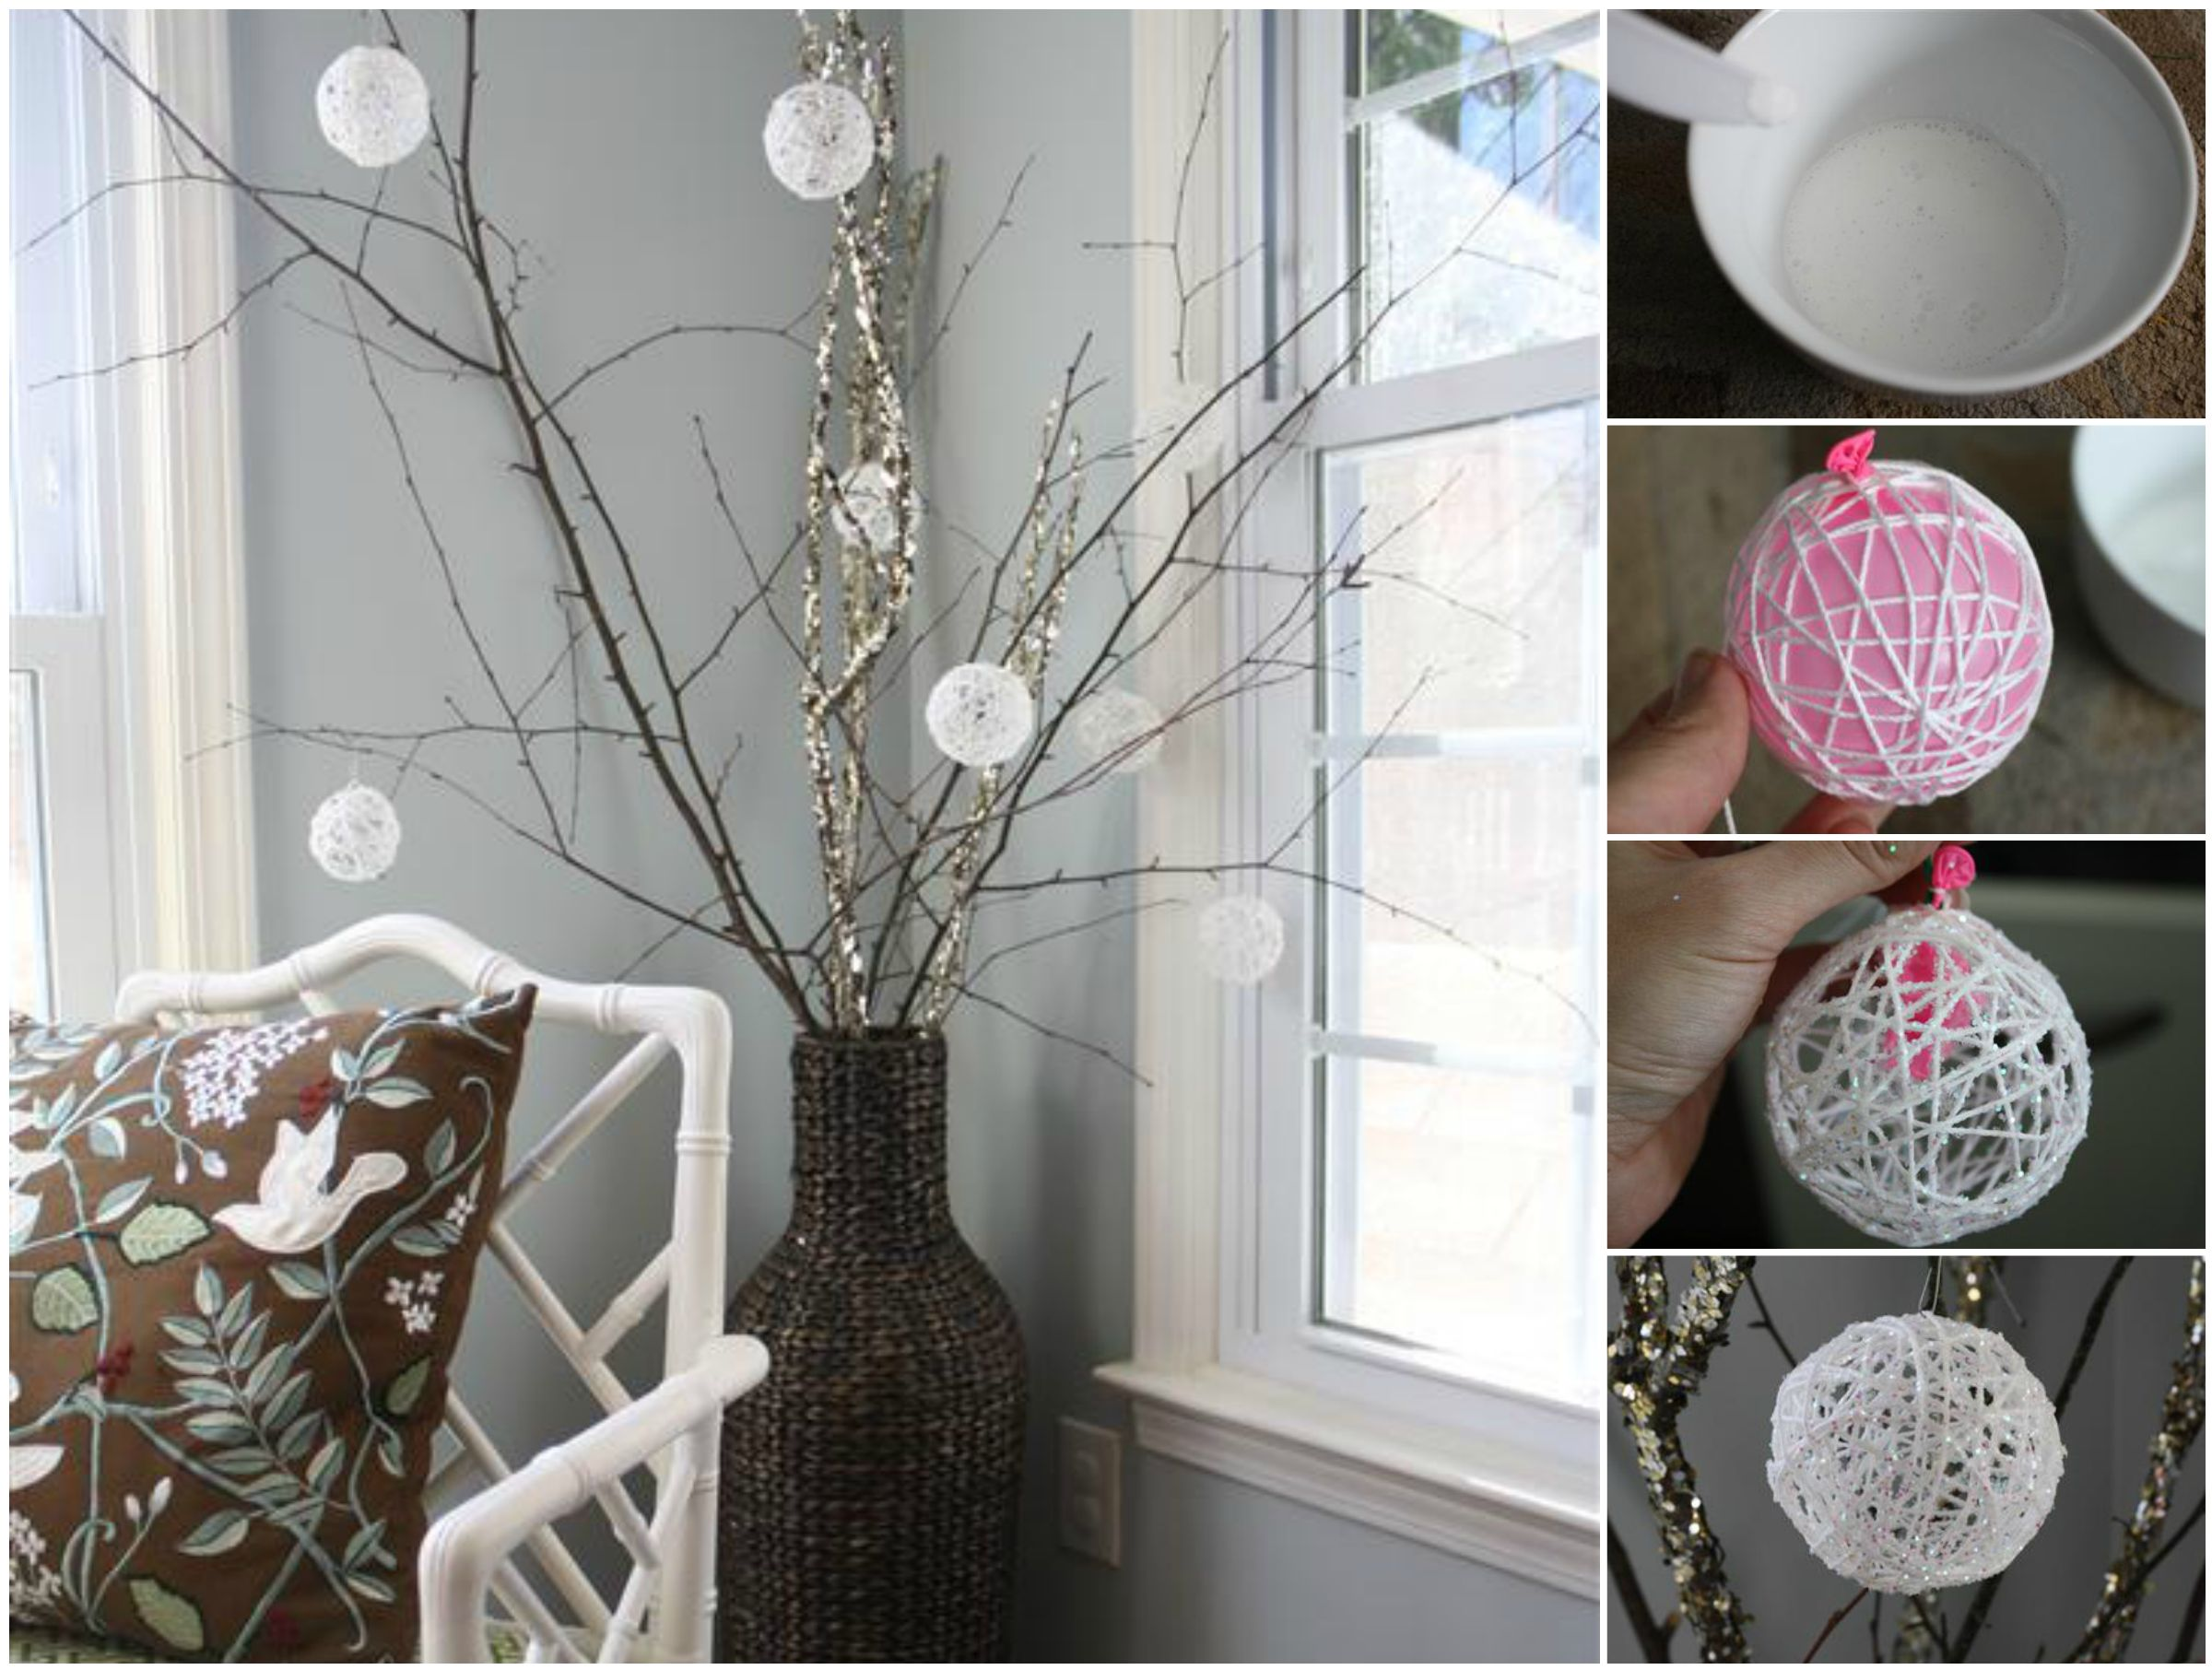 Creative ideas diy glittery snowball christmas ornaments for Creative christmas ideas